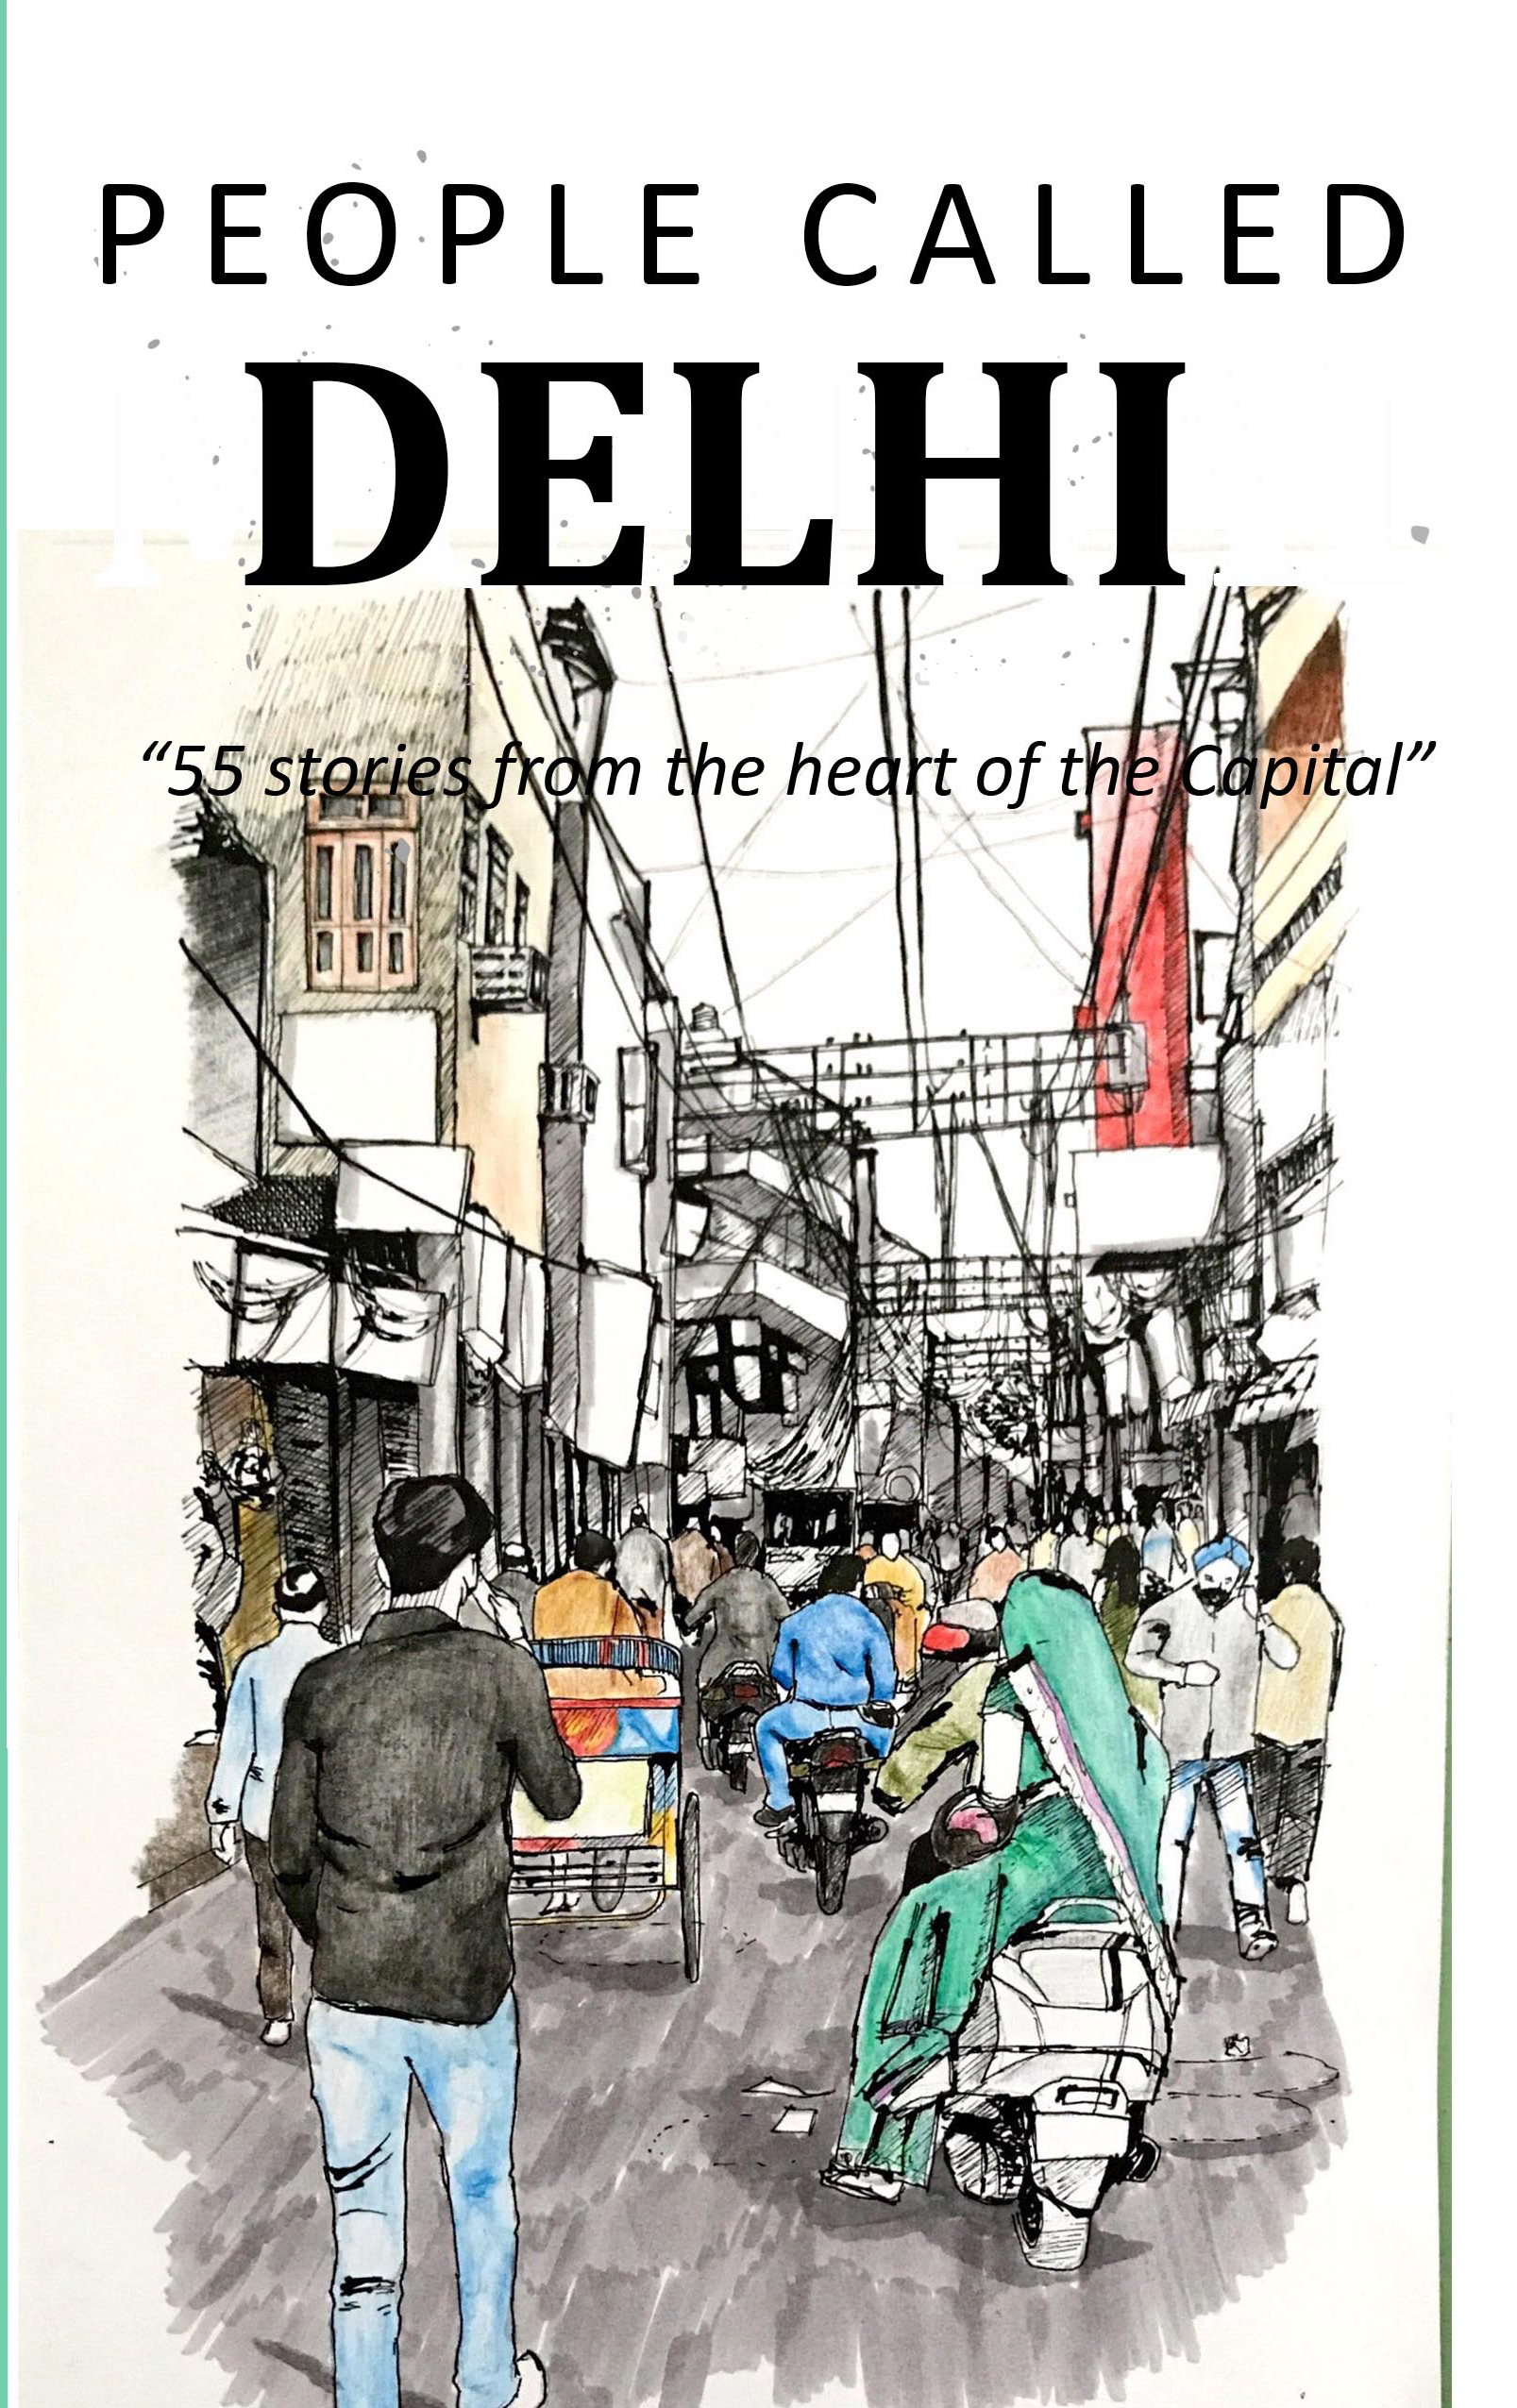 People Called Delhi